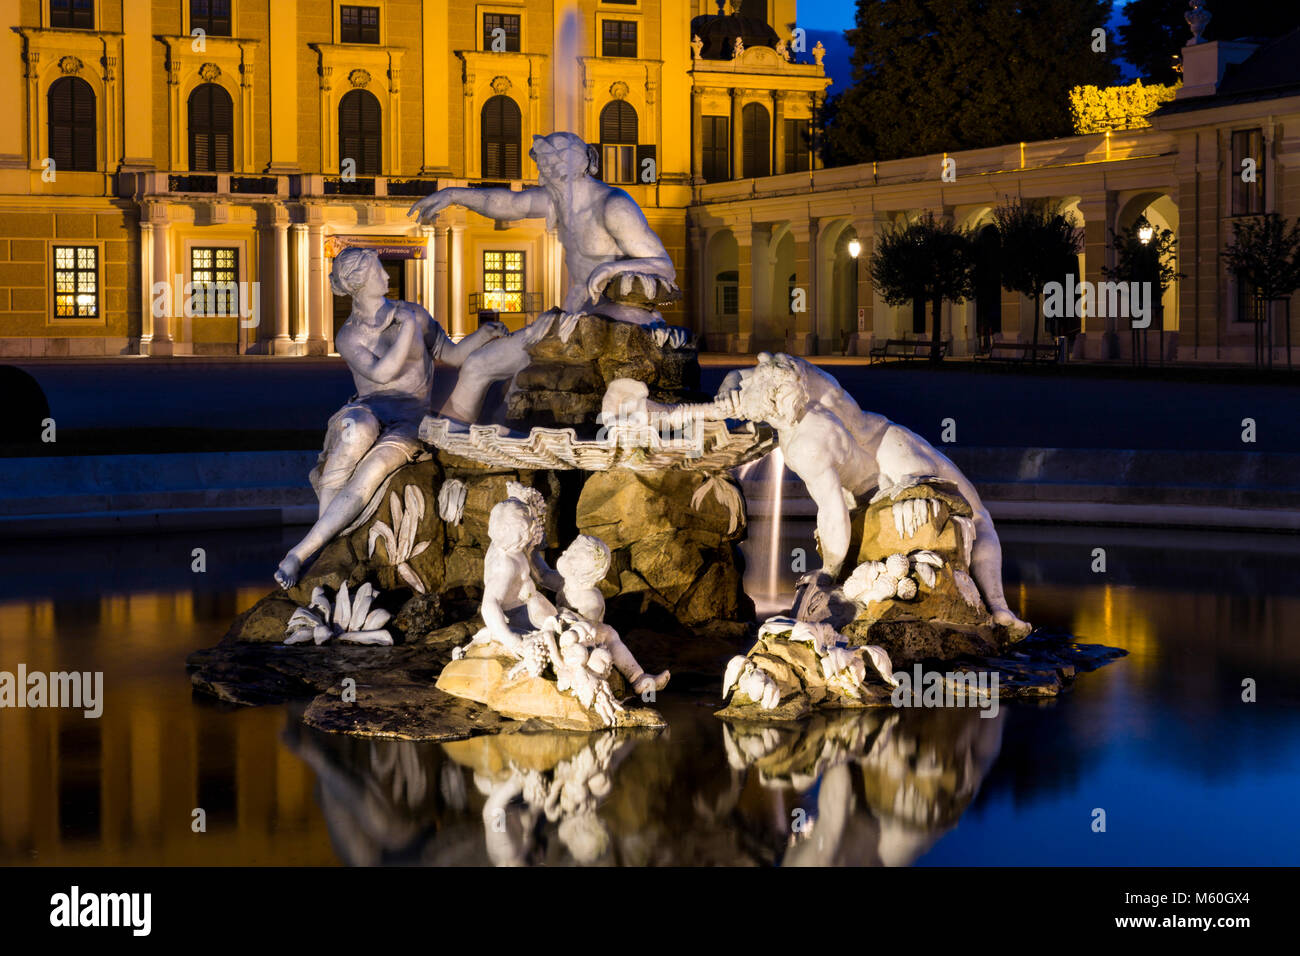 Schönbrunn Palace and one of the Naiad Fountains (spirits of springs and rivers) illuminated at night, Schonbrunn, - Stock Image